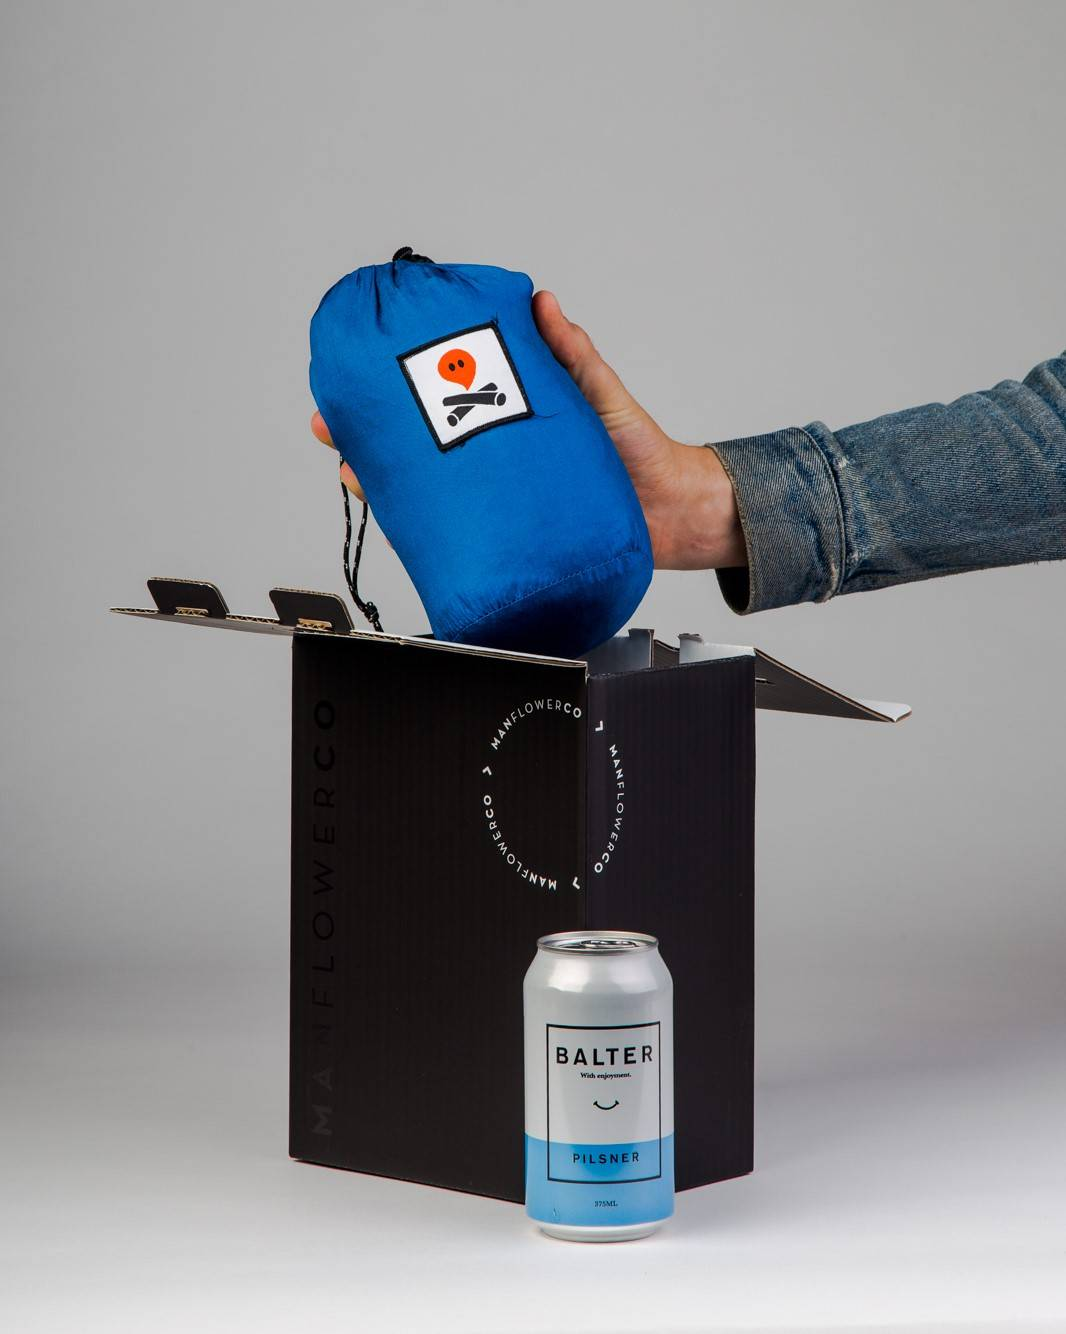 Hammock + Beer, part of Manflower Co's range of holiday gifts for men.